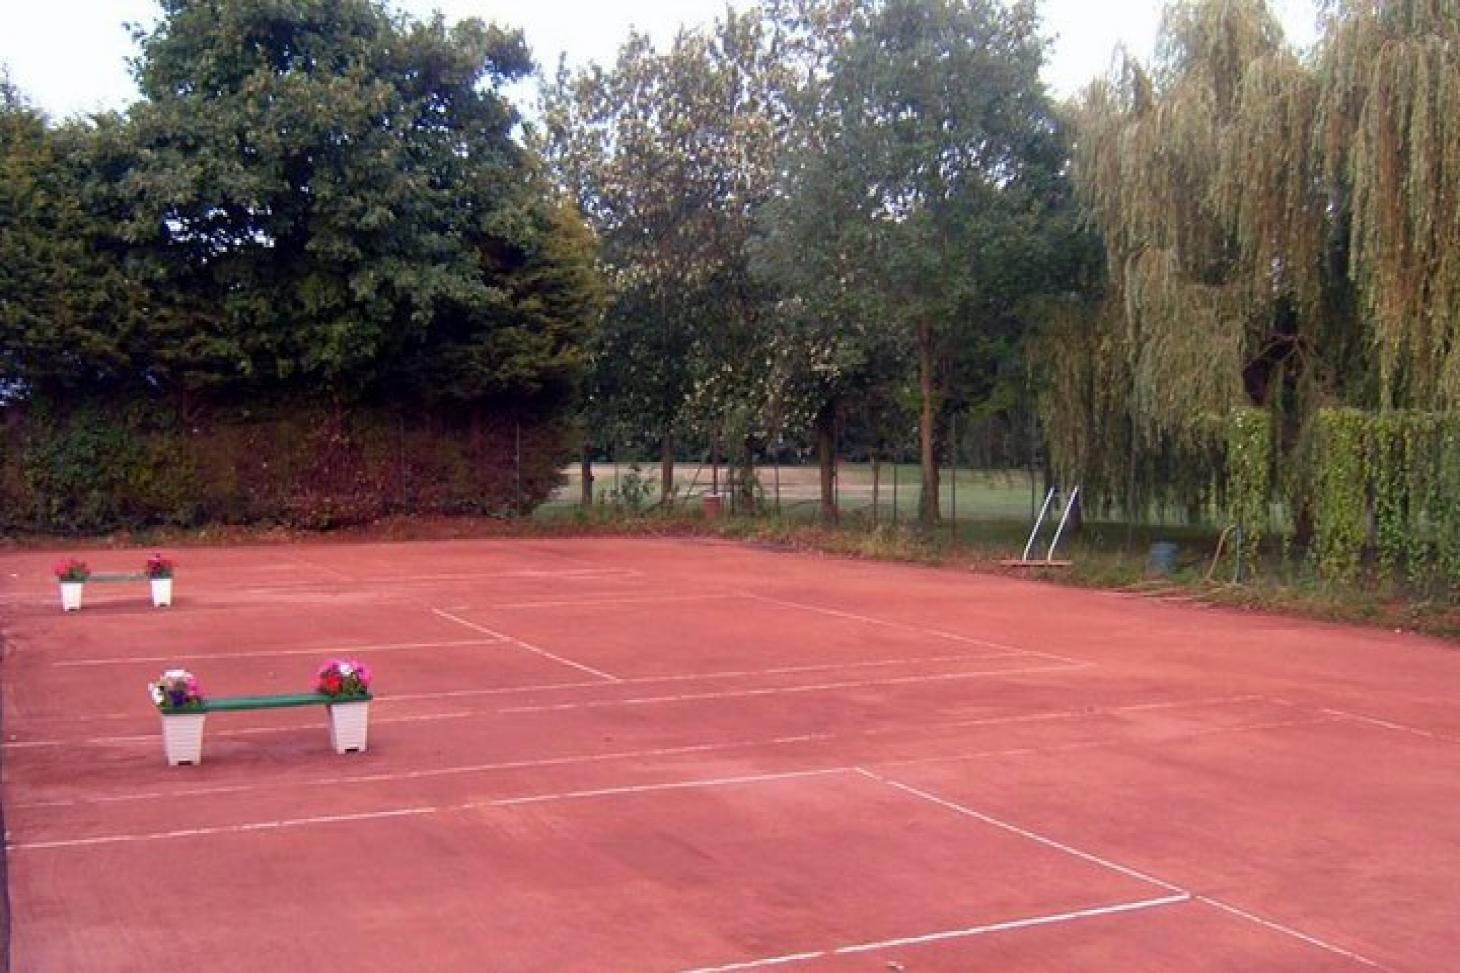 The Warren Italy Clay Tennis Club Outdoor | Clay tennis court